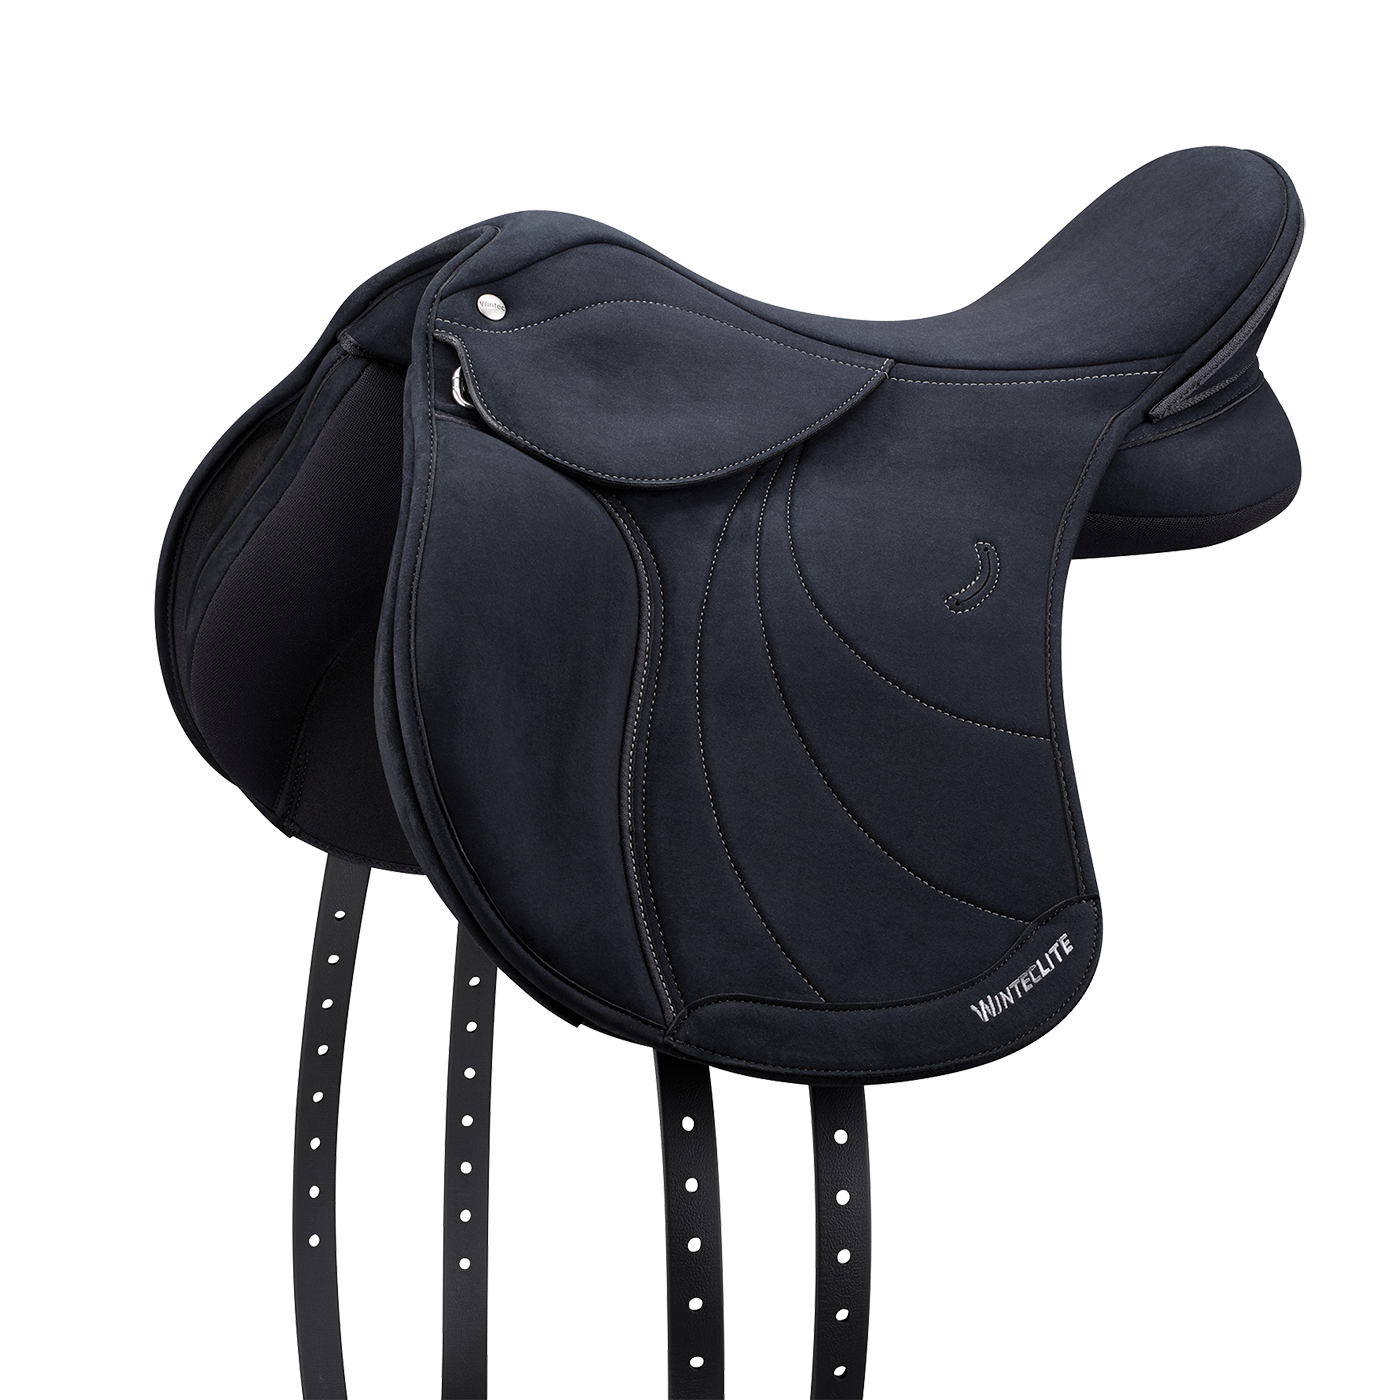 WintecLite Pony All Purpose D'Lux - 361:31201119371352,32730955612248